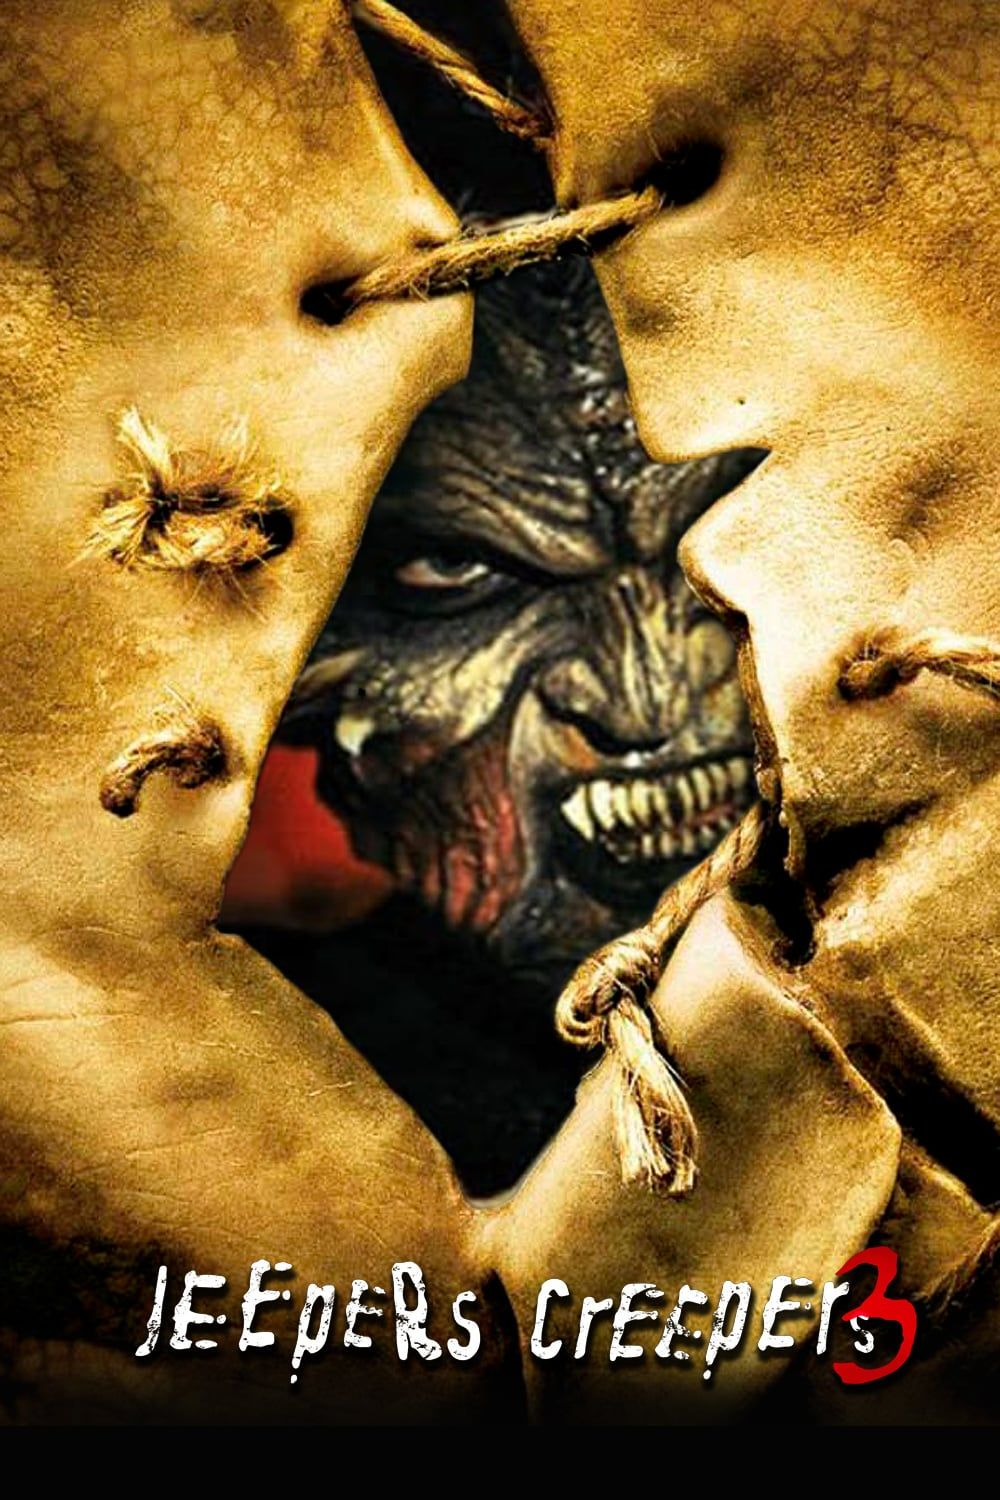 Jeepers Creepers 3 full movie Hd1080p Sub English Play